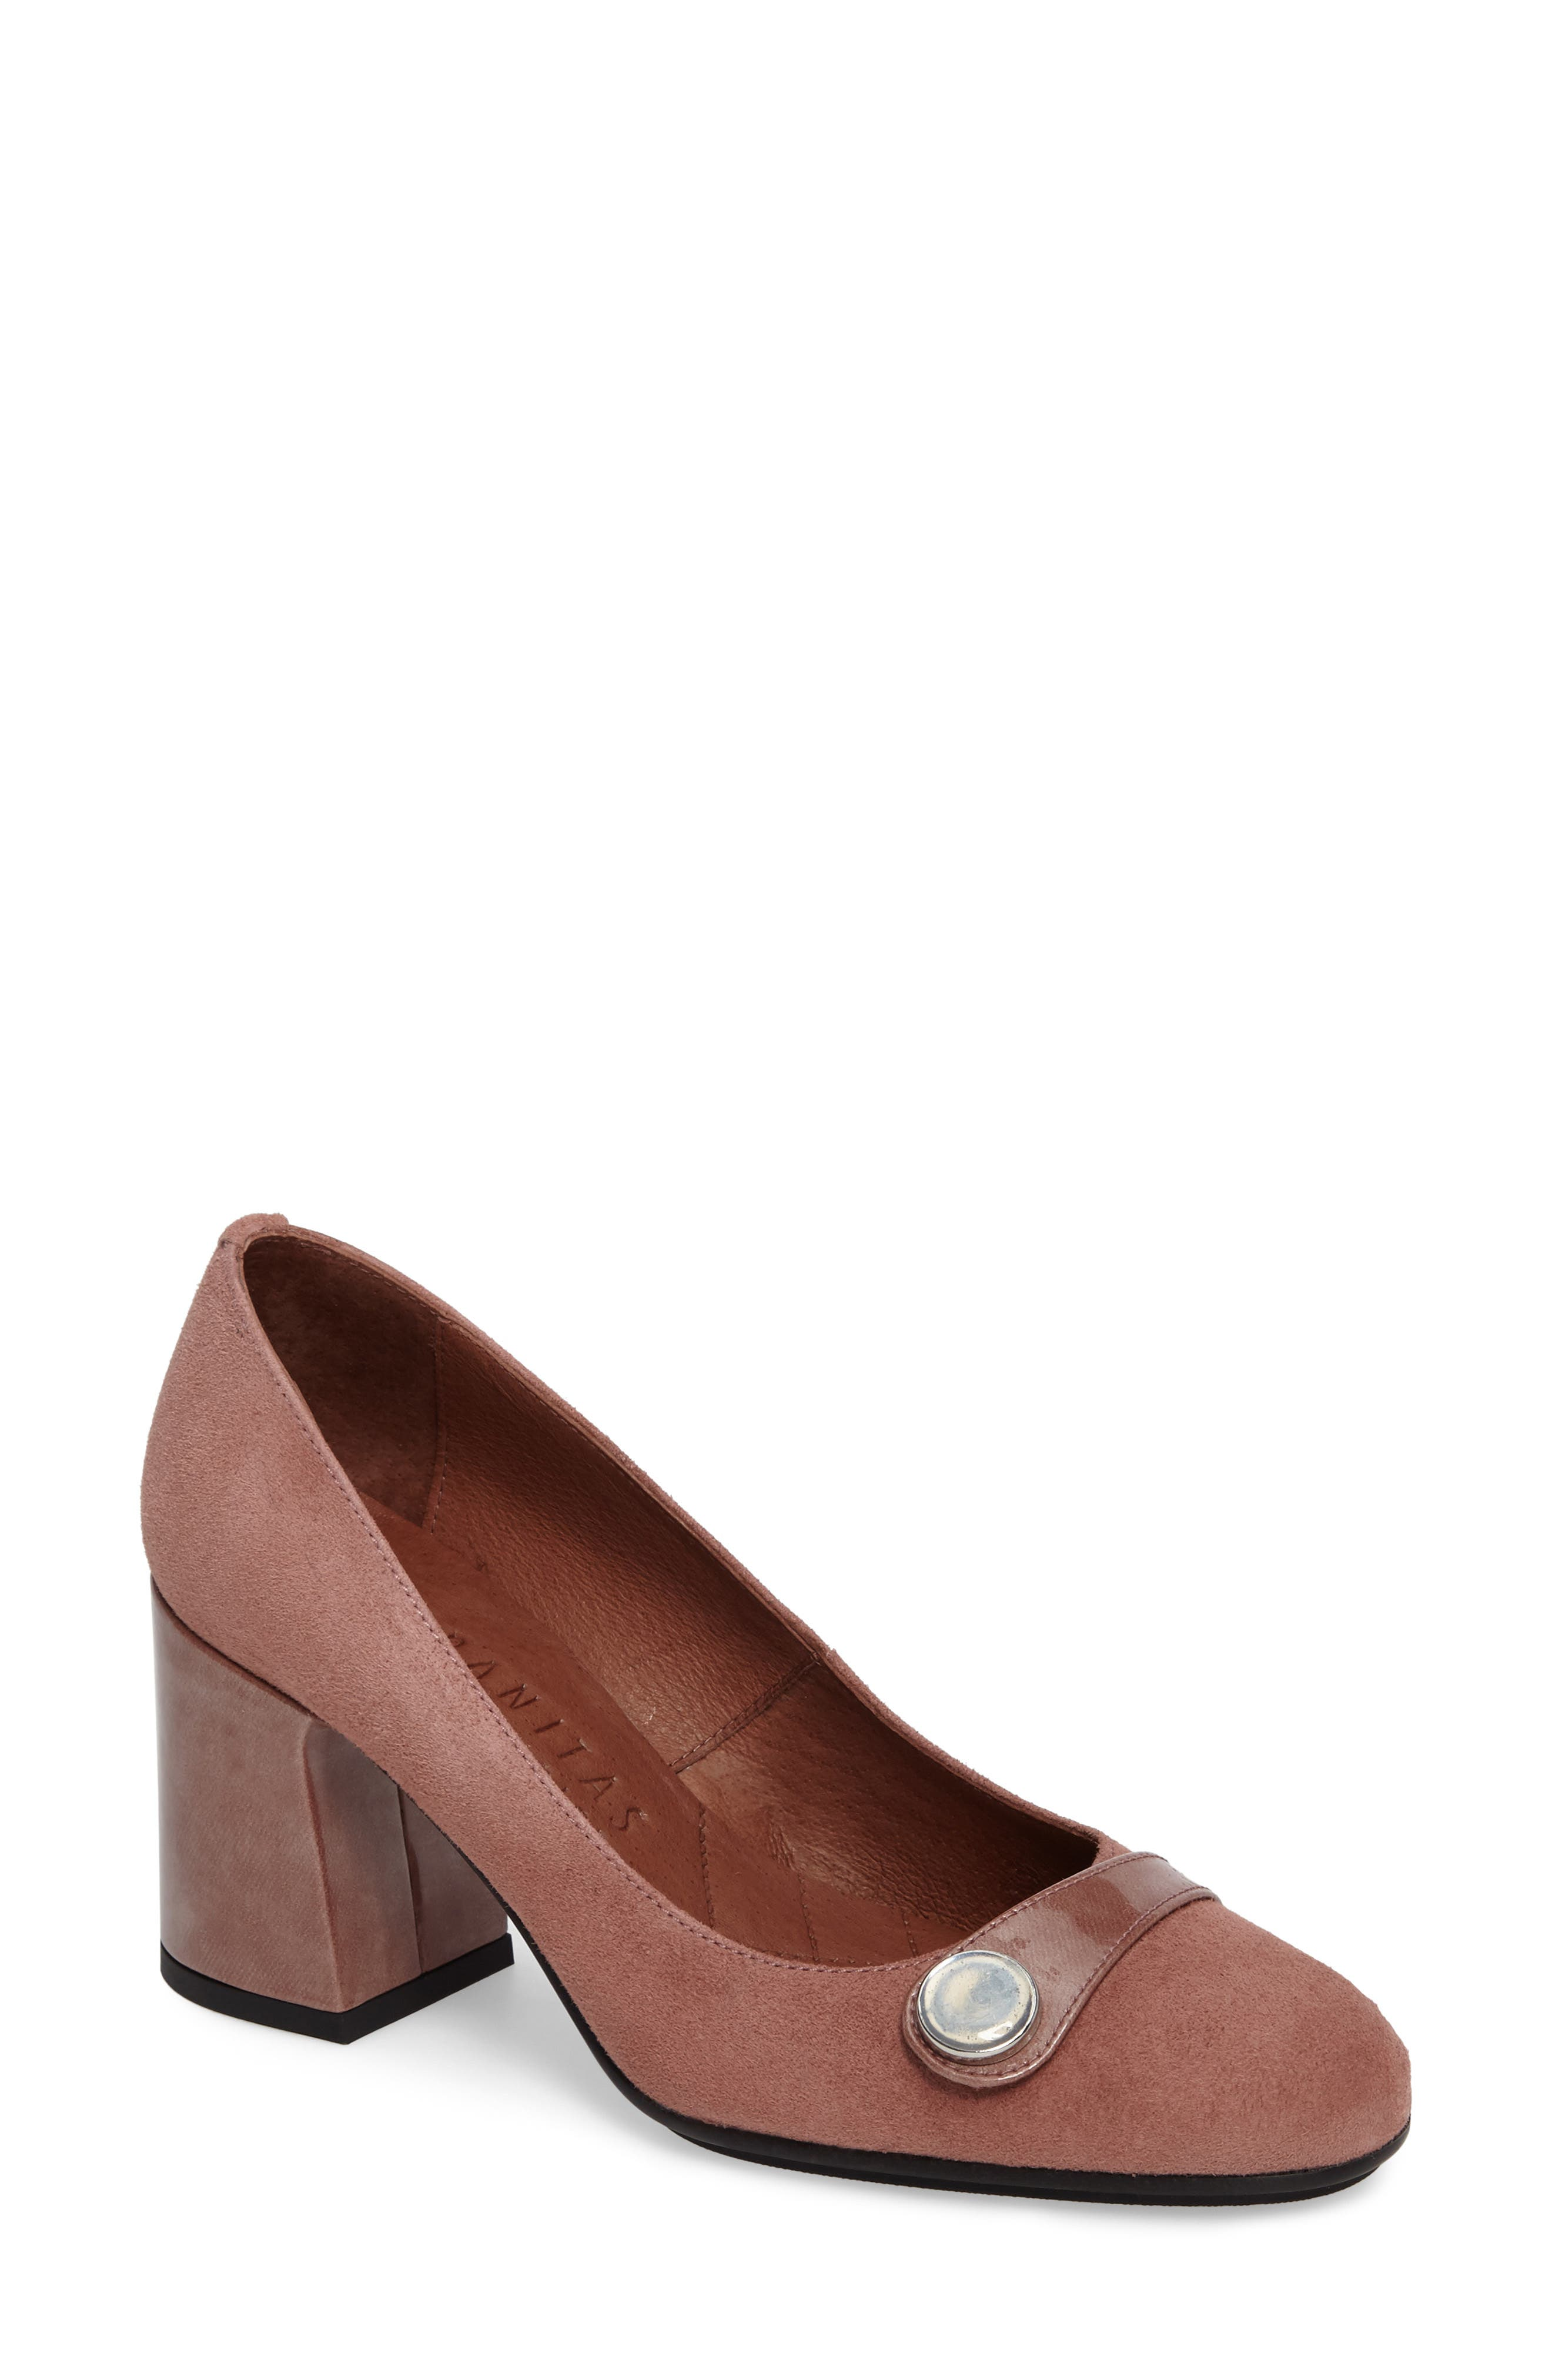 Gretchen Pump,                             Main thumbnail 1, color,                             Rose Leather